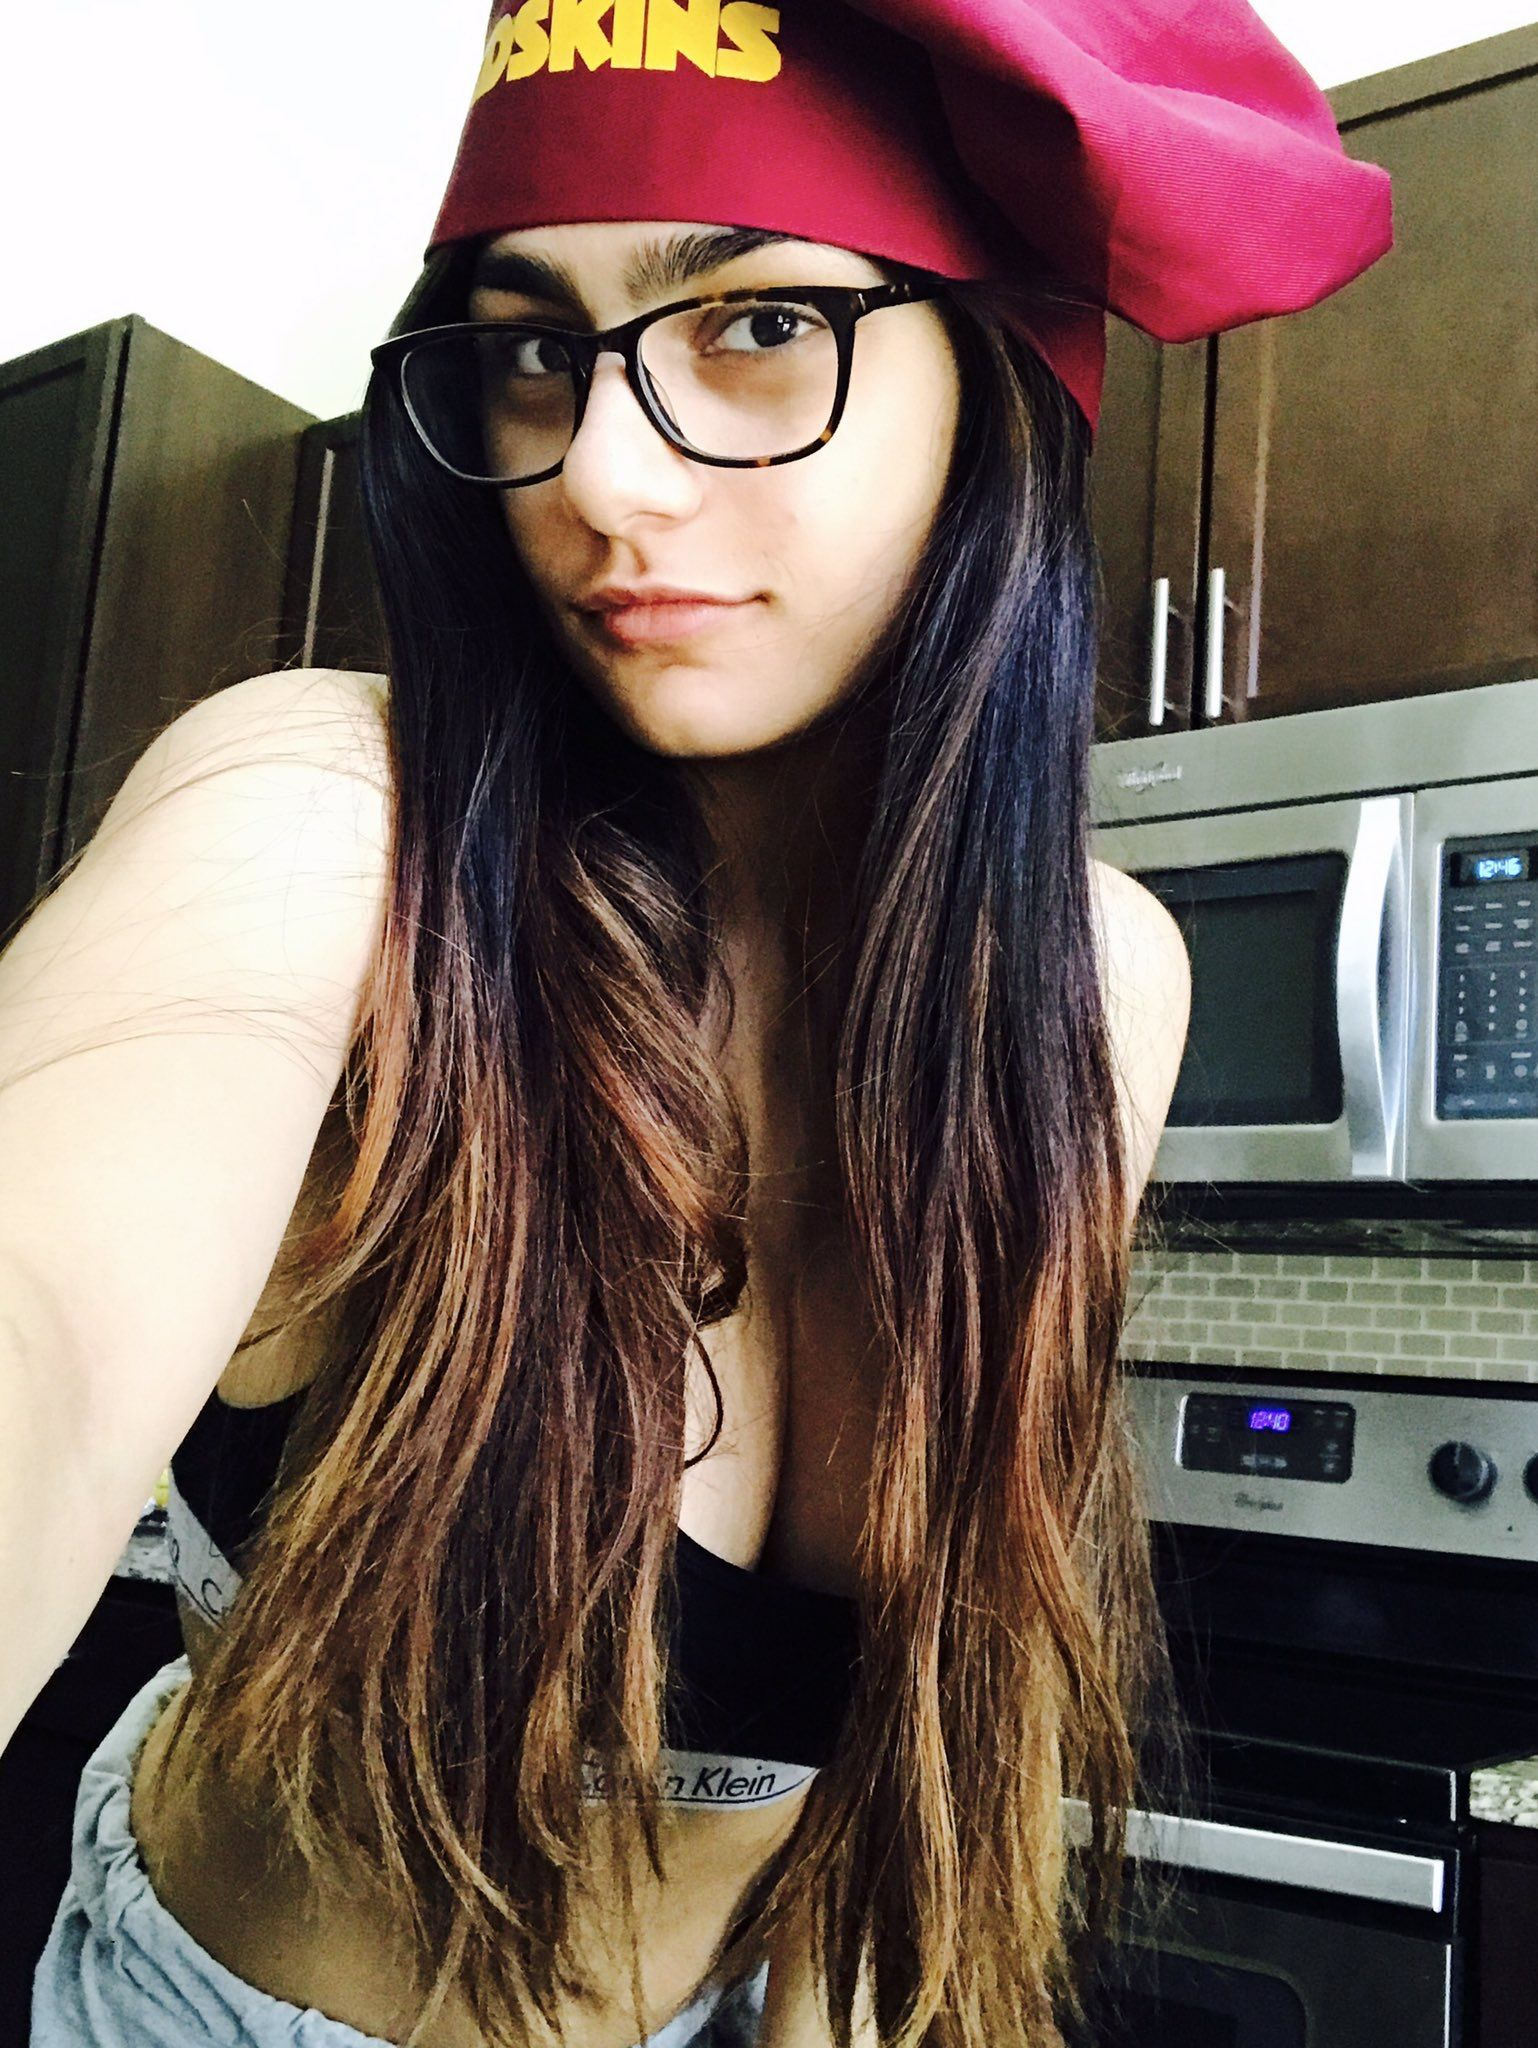 Mia Khalifa is one sexy Lebanese porn star you have to discover Watch her amazing free porn videos on Pornhub This is one video vixen to enjoy cumming to